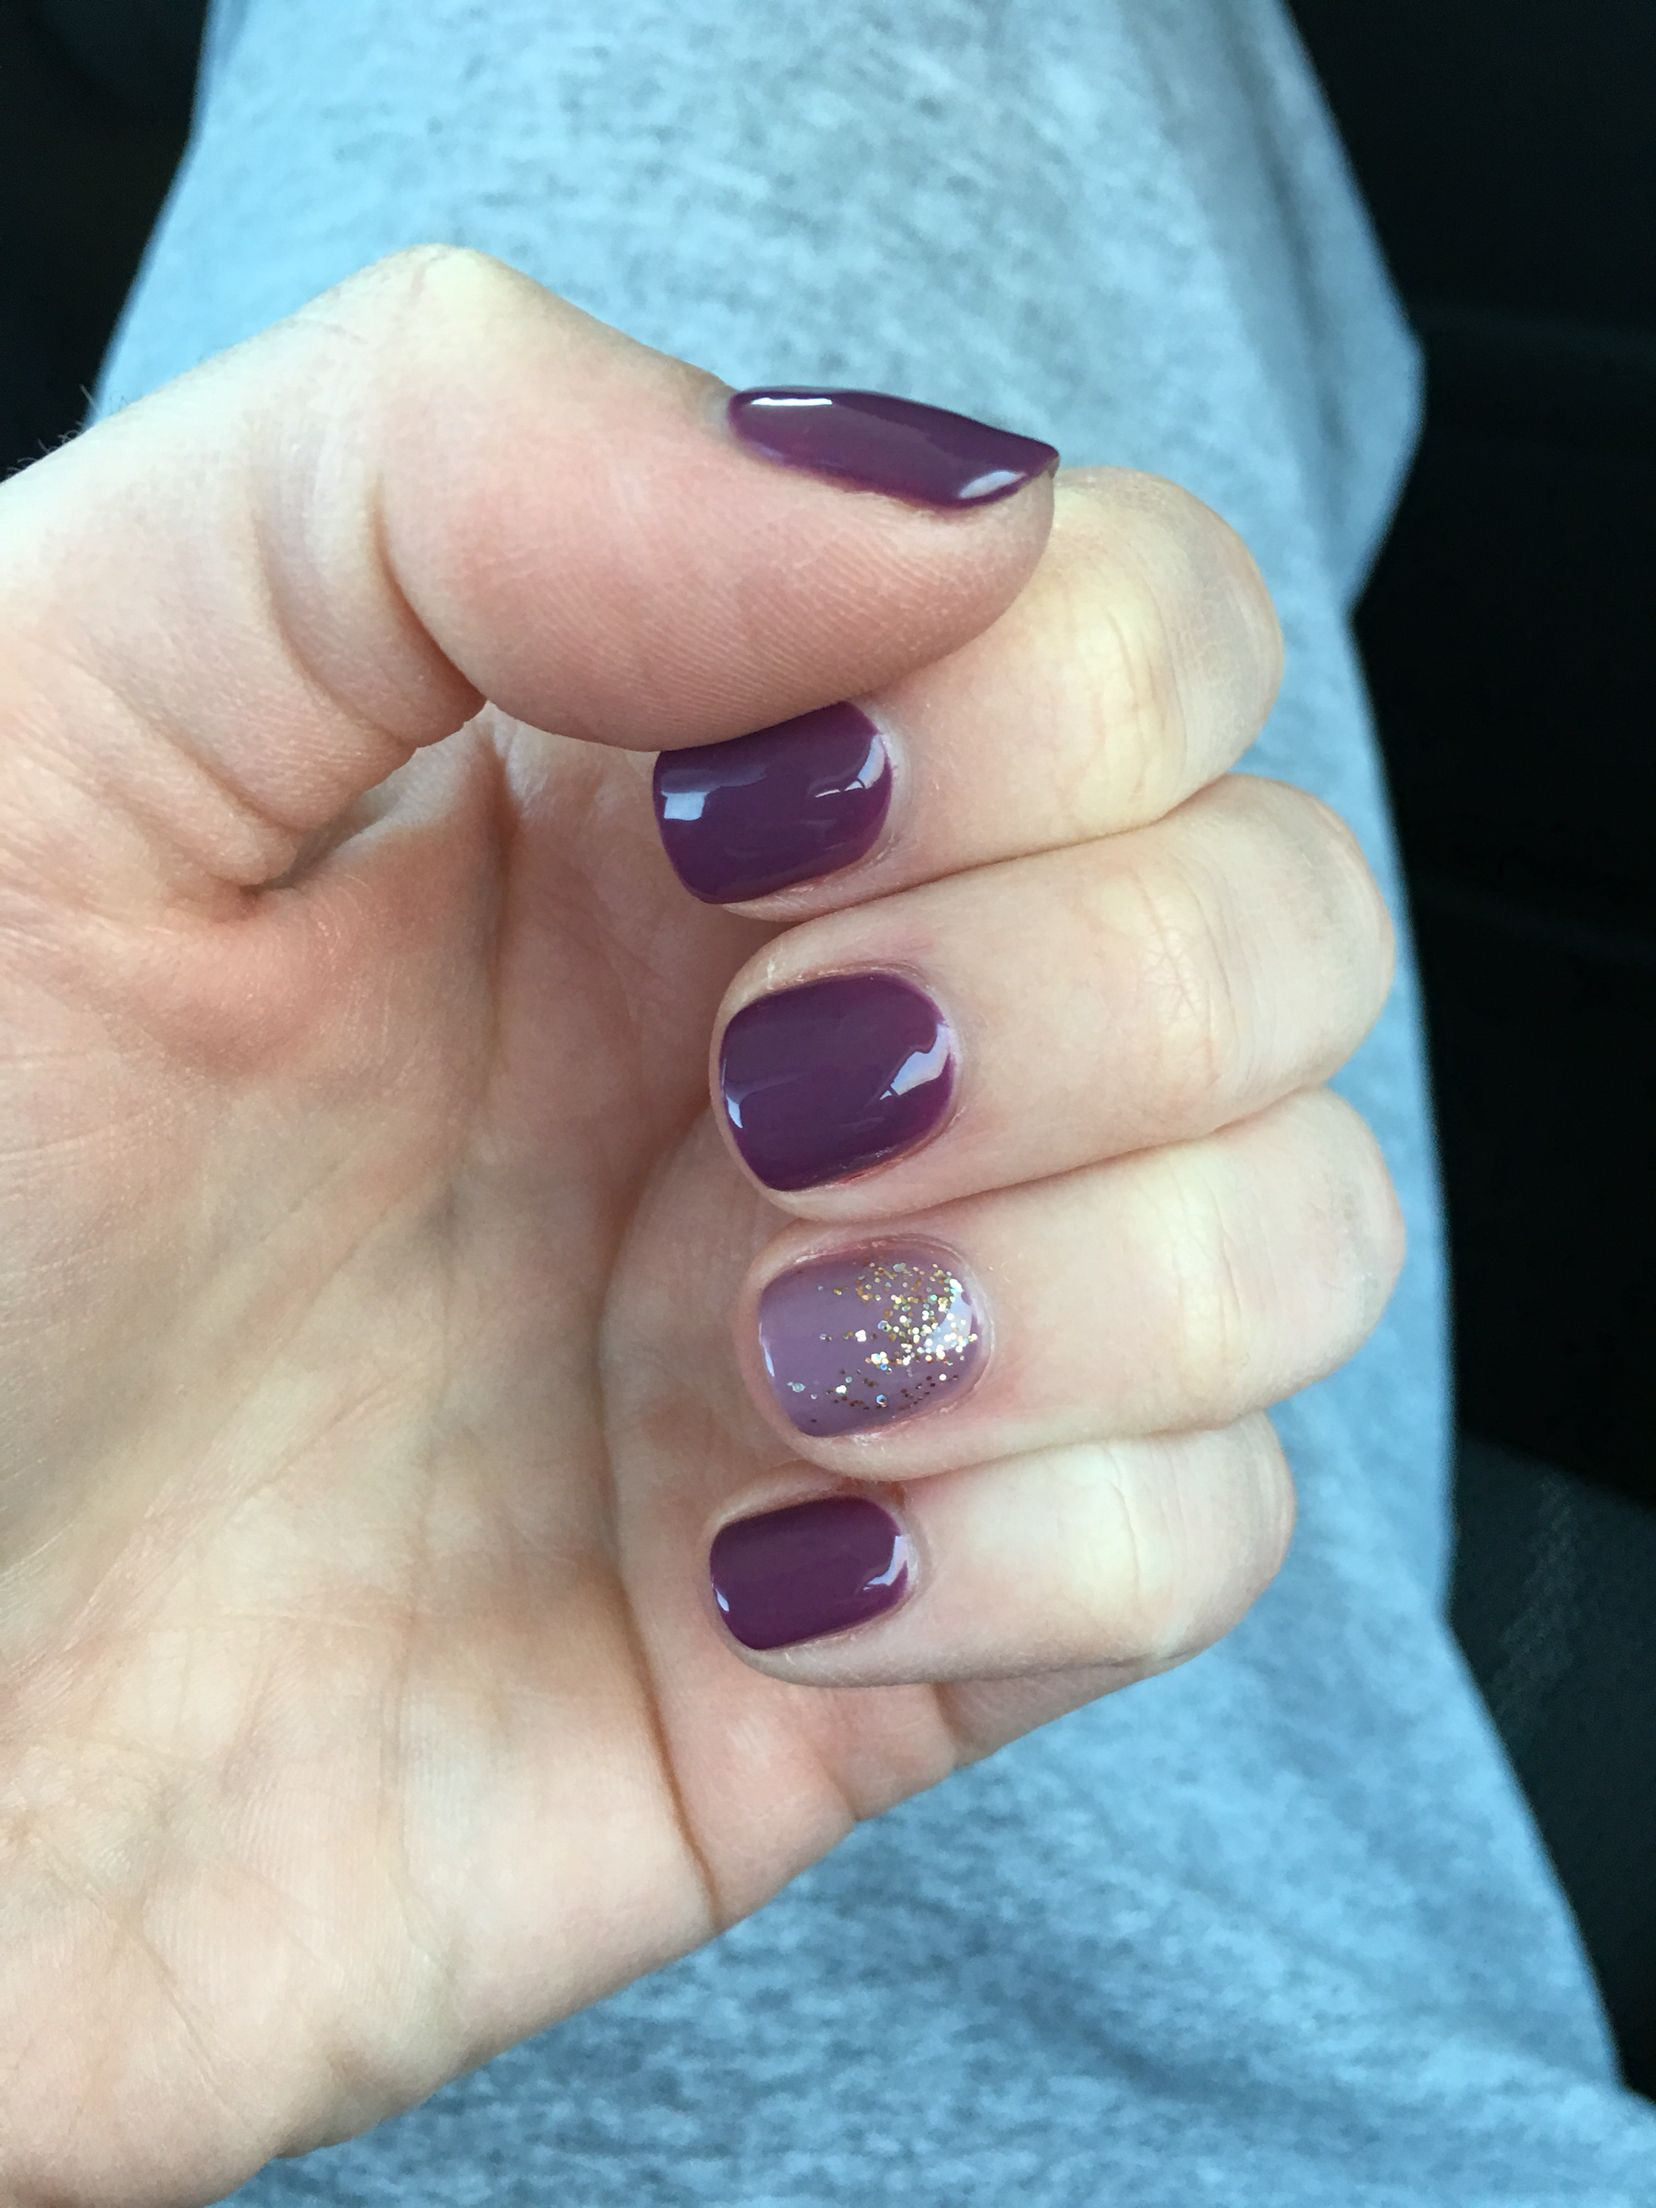 Nails inc gel nail colors and gel nail polish on pinterest - Manicure